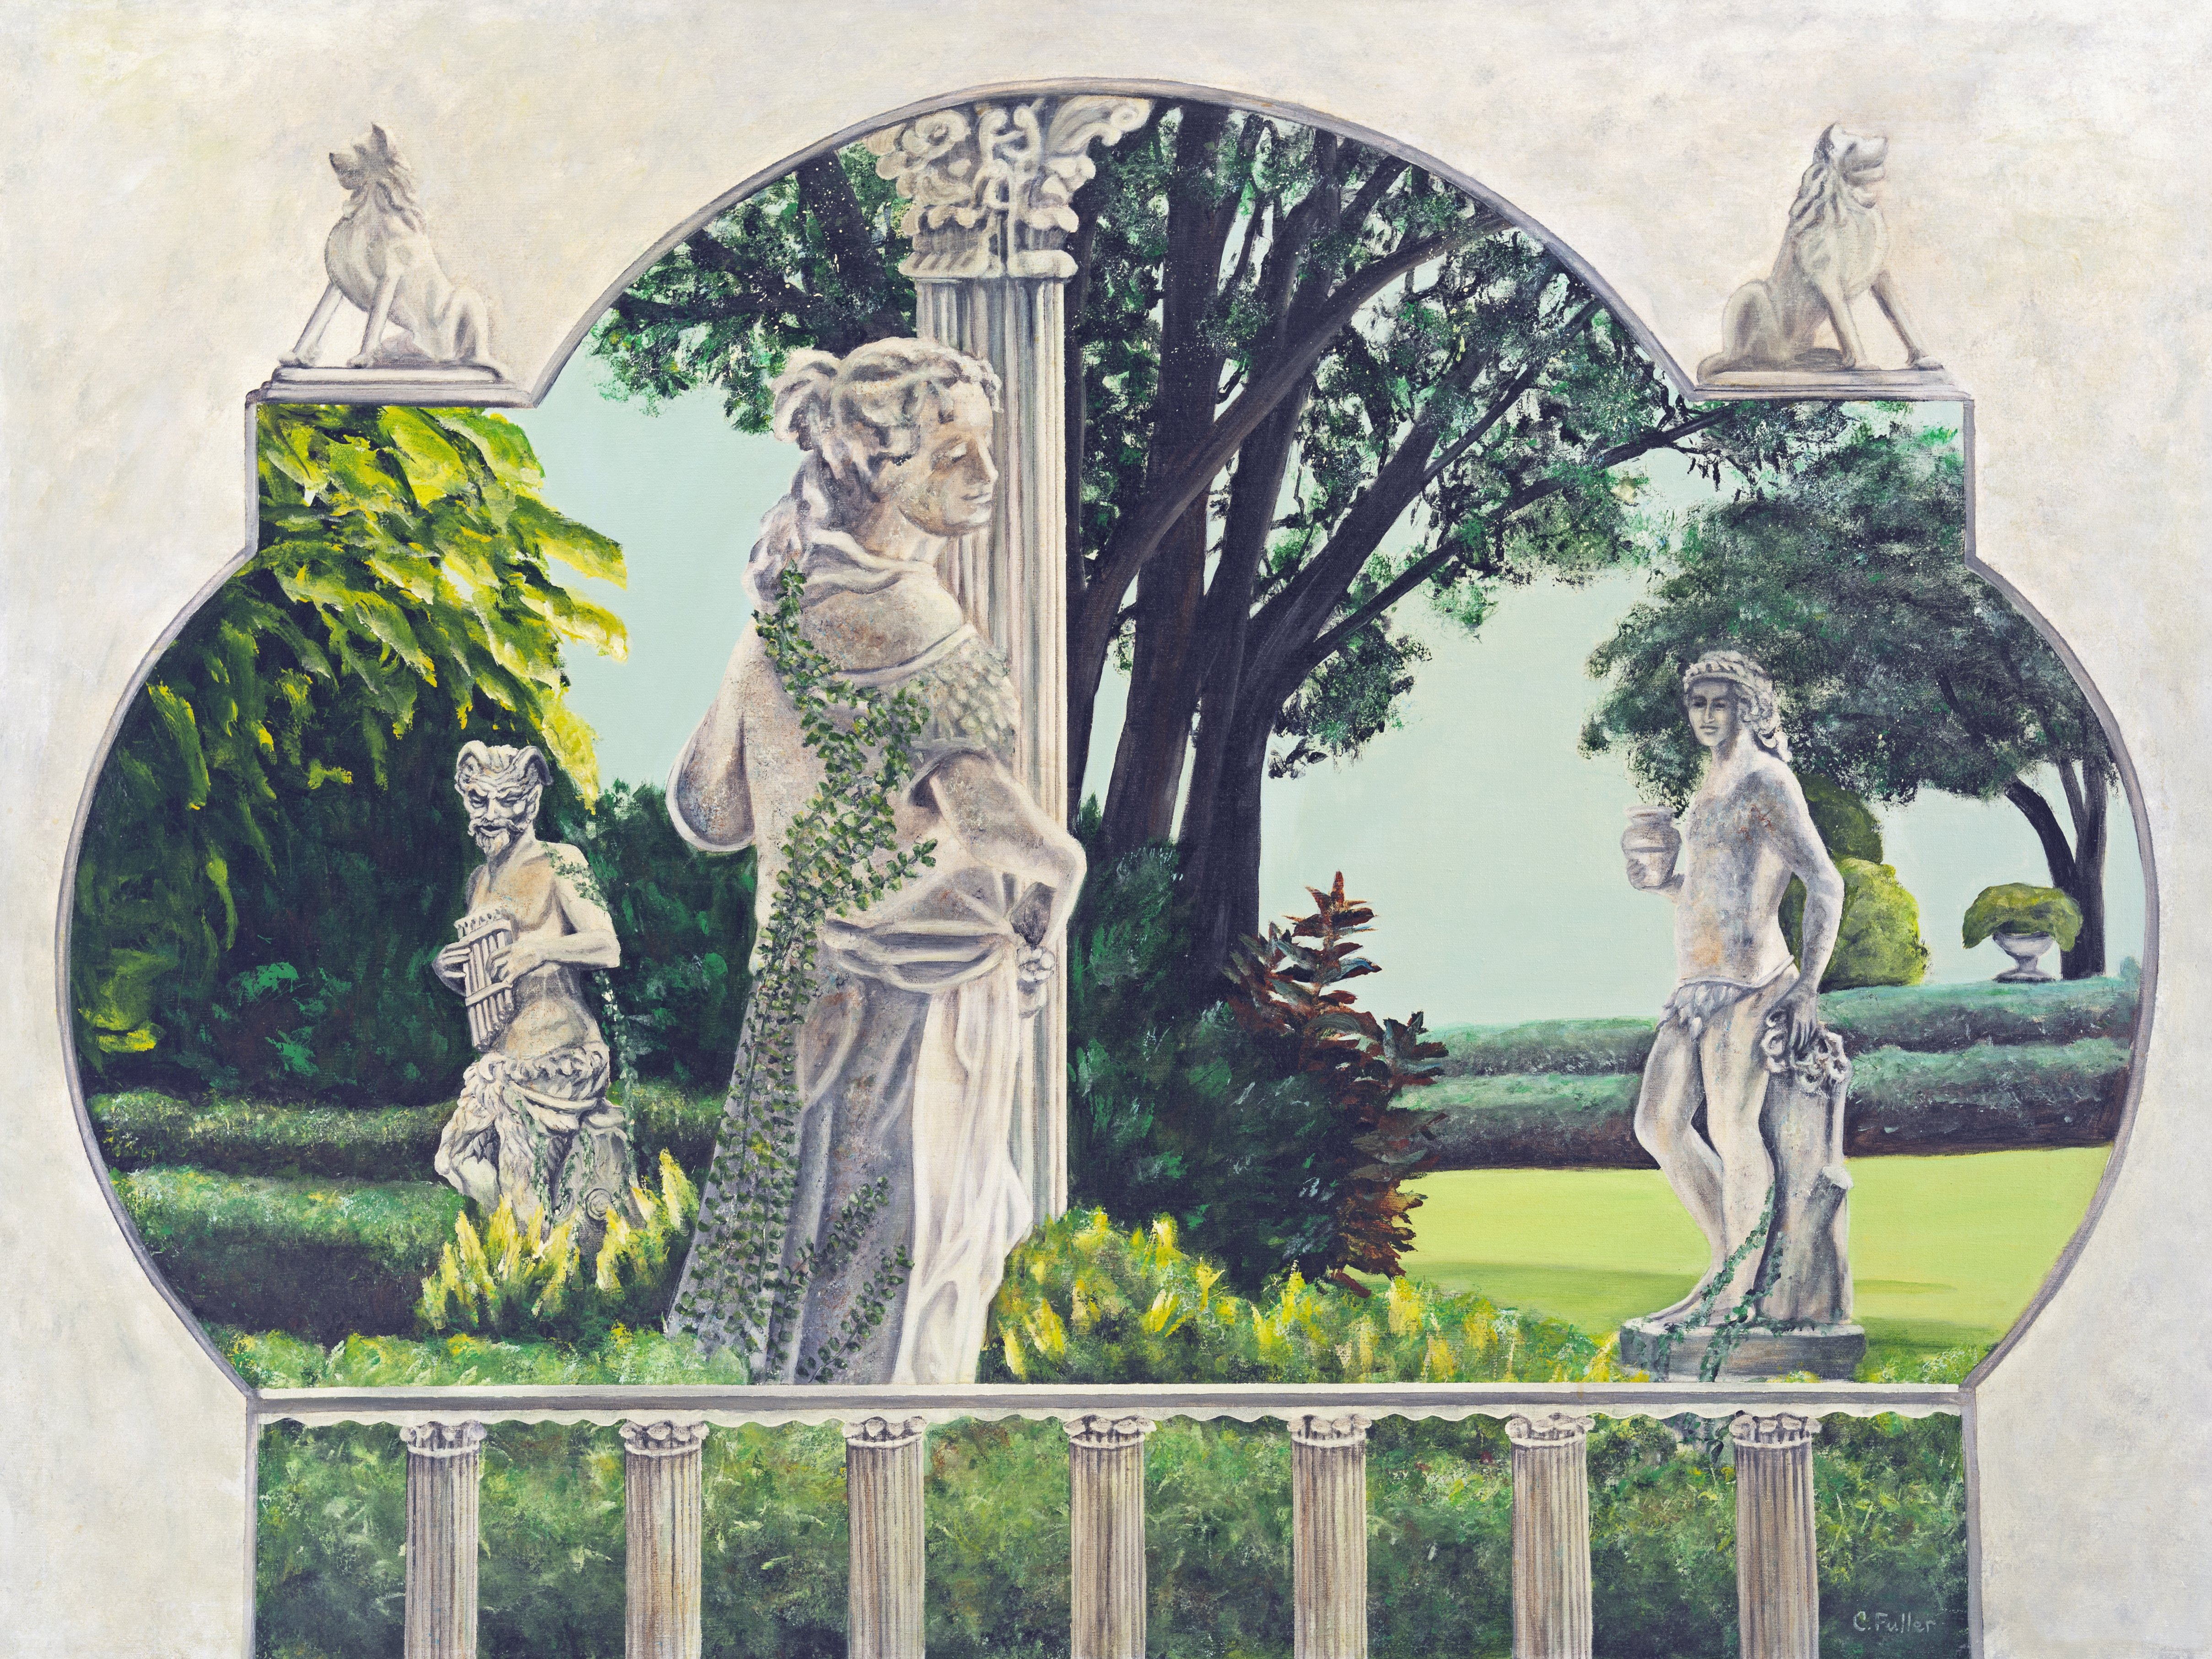 Caren Keyser: 'Pan s Garden of Delight', 1997 Acrylic Painting, Mythology. Artist Description: Romance flourishes in this garden, encouraged by Pan playing his music to encourange them in their devilment. ...